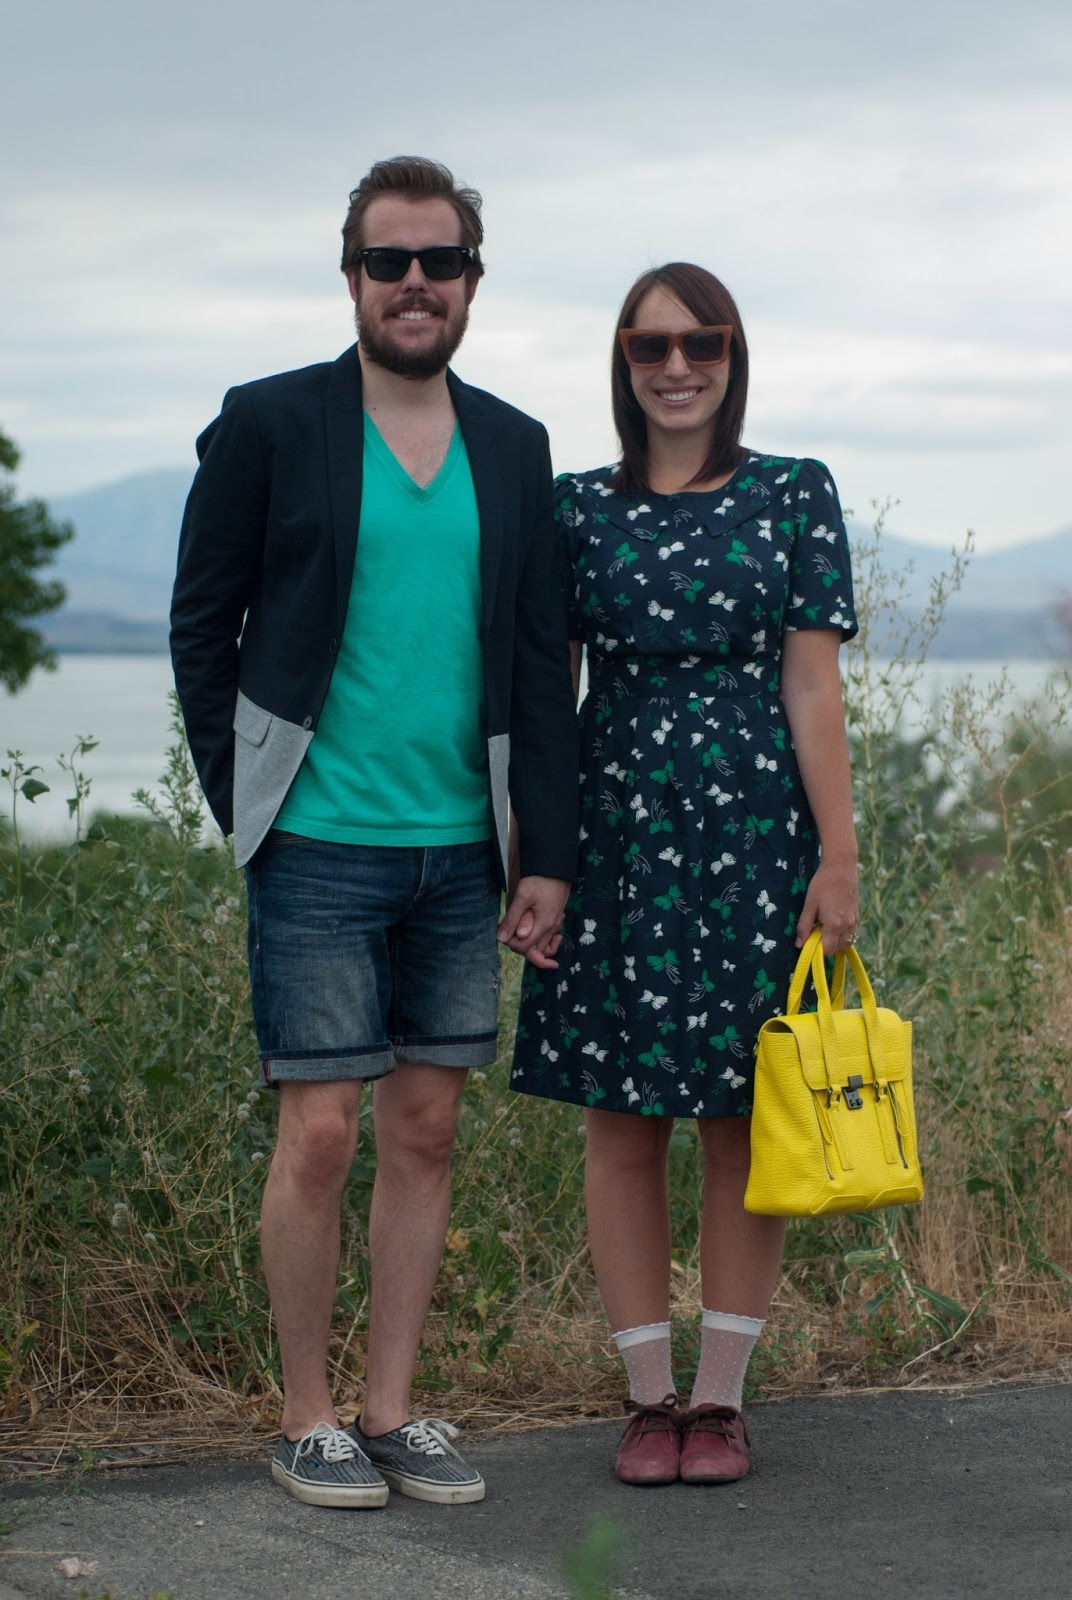 couples fashion, couples style, fashion blog, style blog, ootd, 3.1 phillip lim, zara, anthropologie